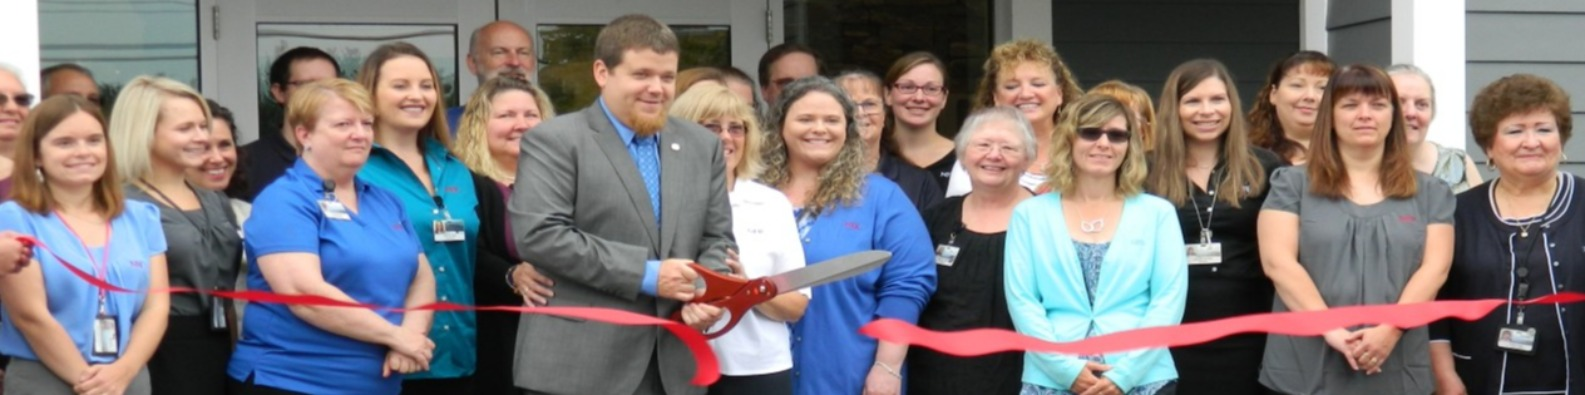 National Field Reps Ribbon Cutting